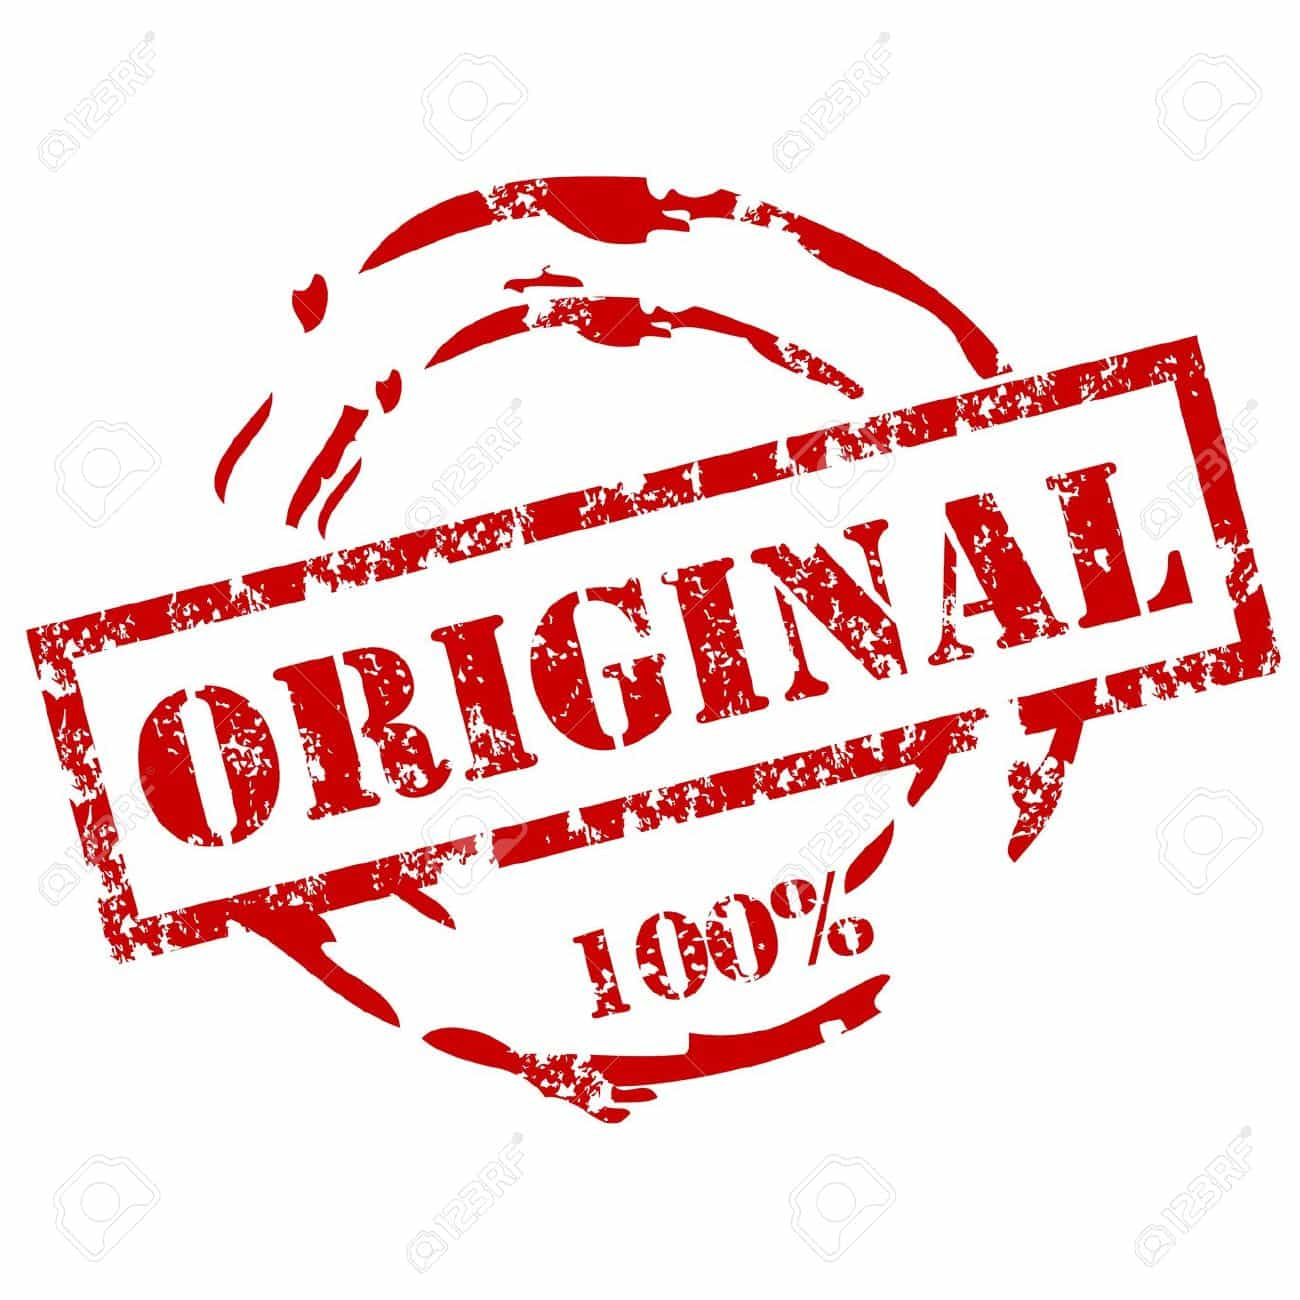 Being Original by Fox Emerson blogs